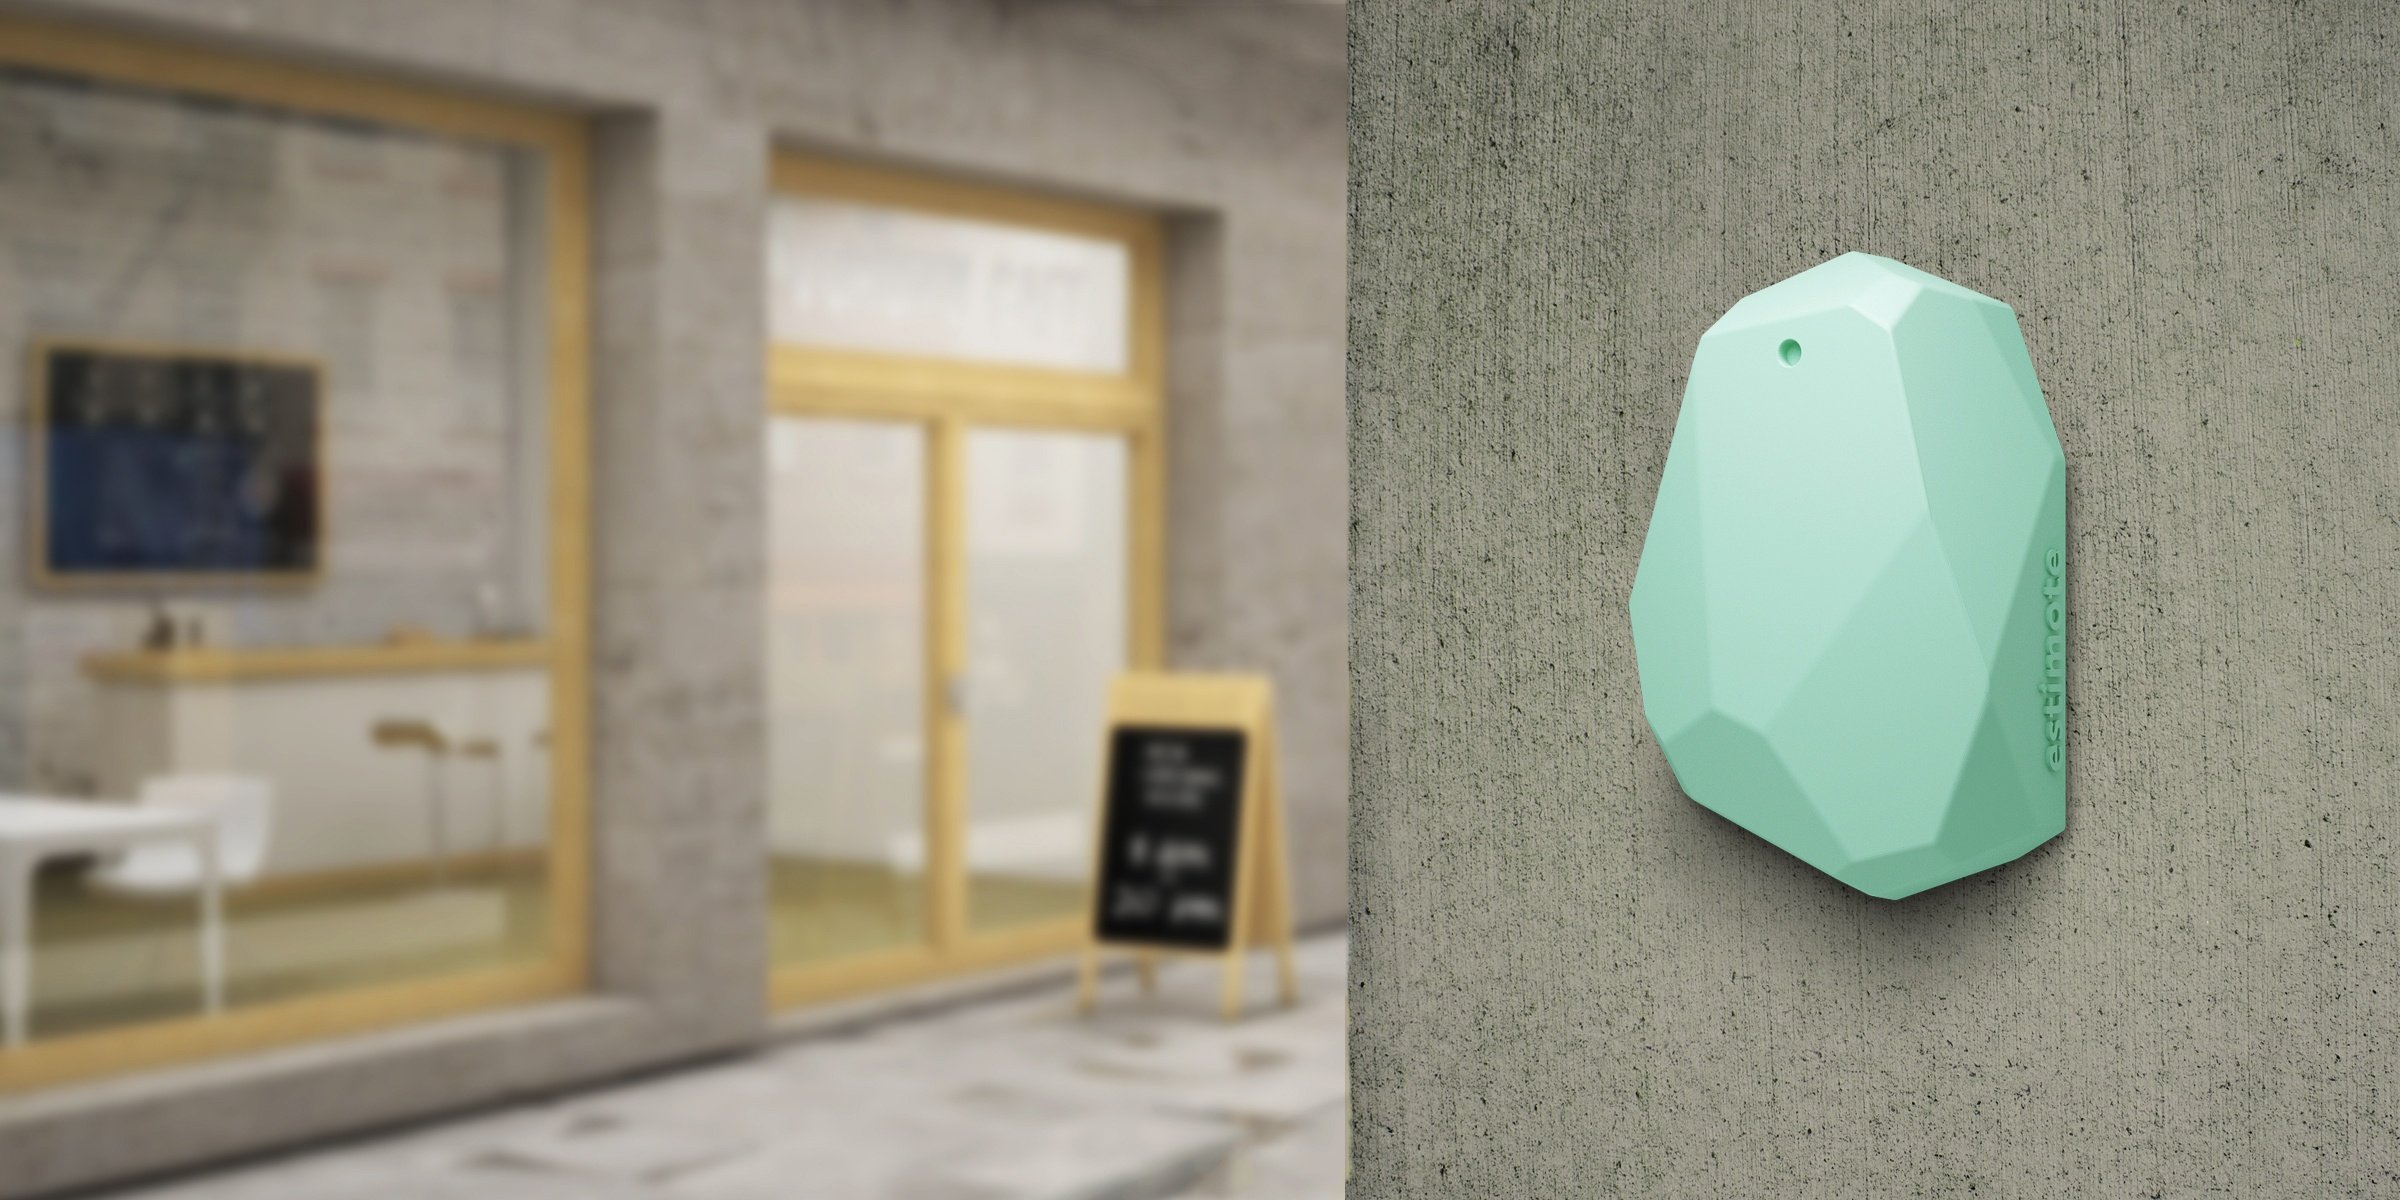 Introducing nearables: Personal portable beacons